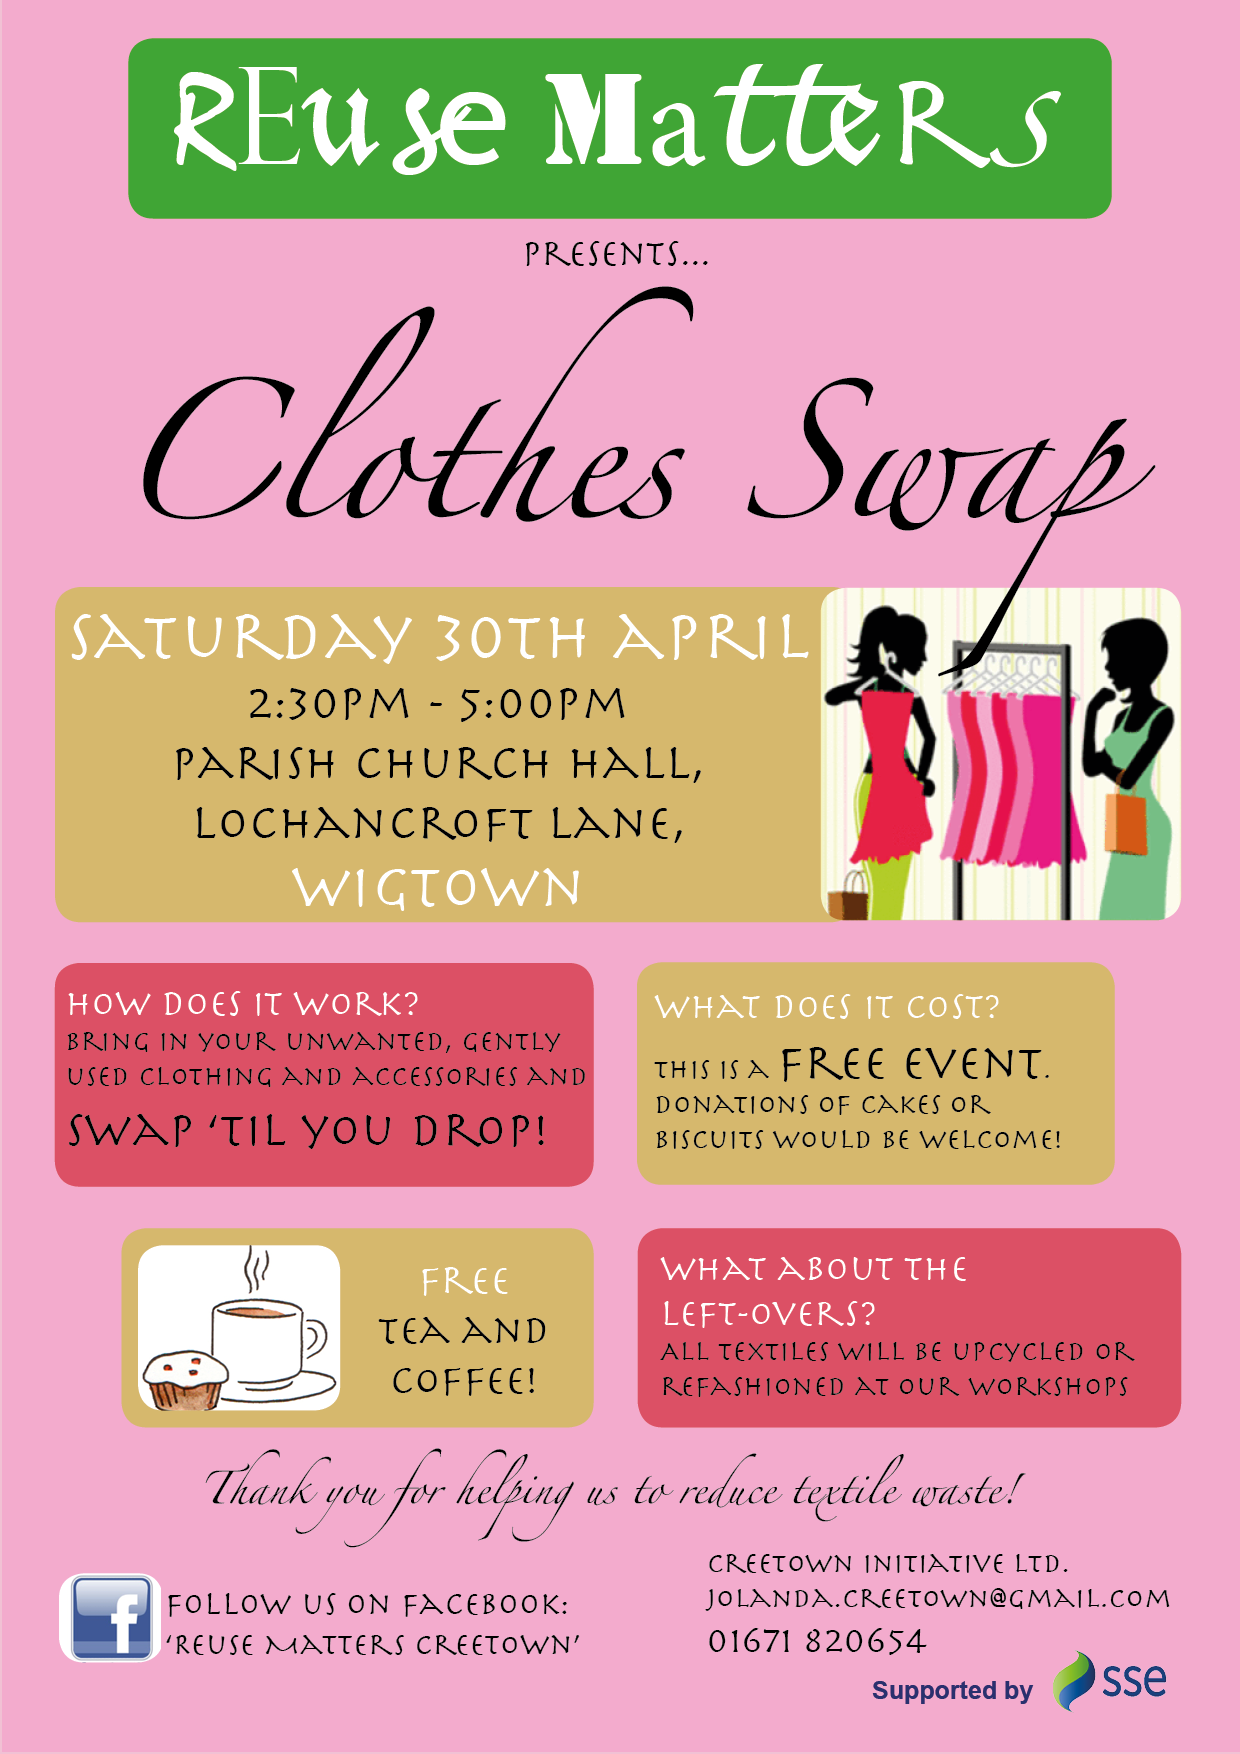 Reuse-Matters-Clothes-Swap-Wigtown-PNG